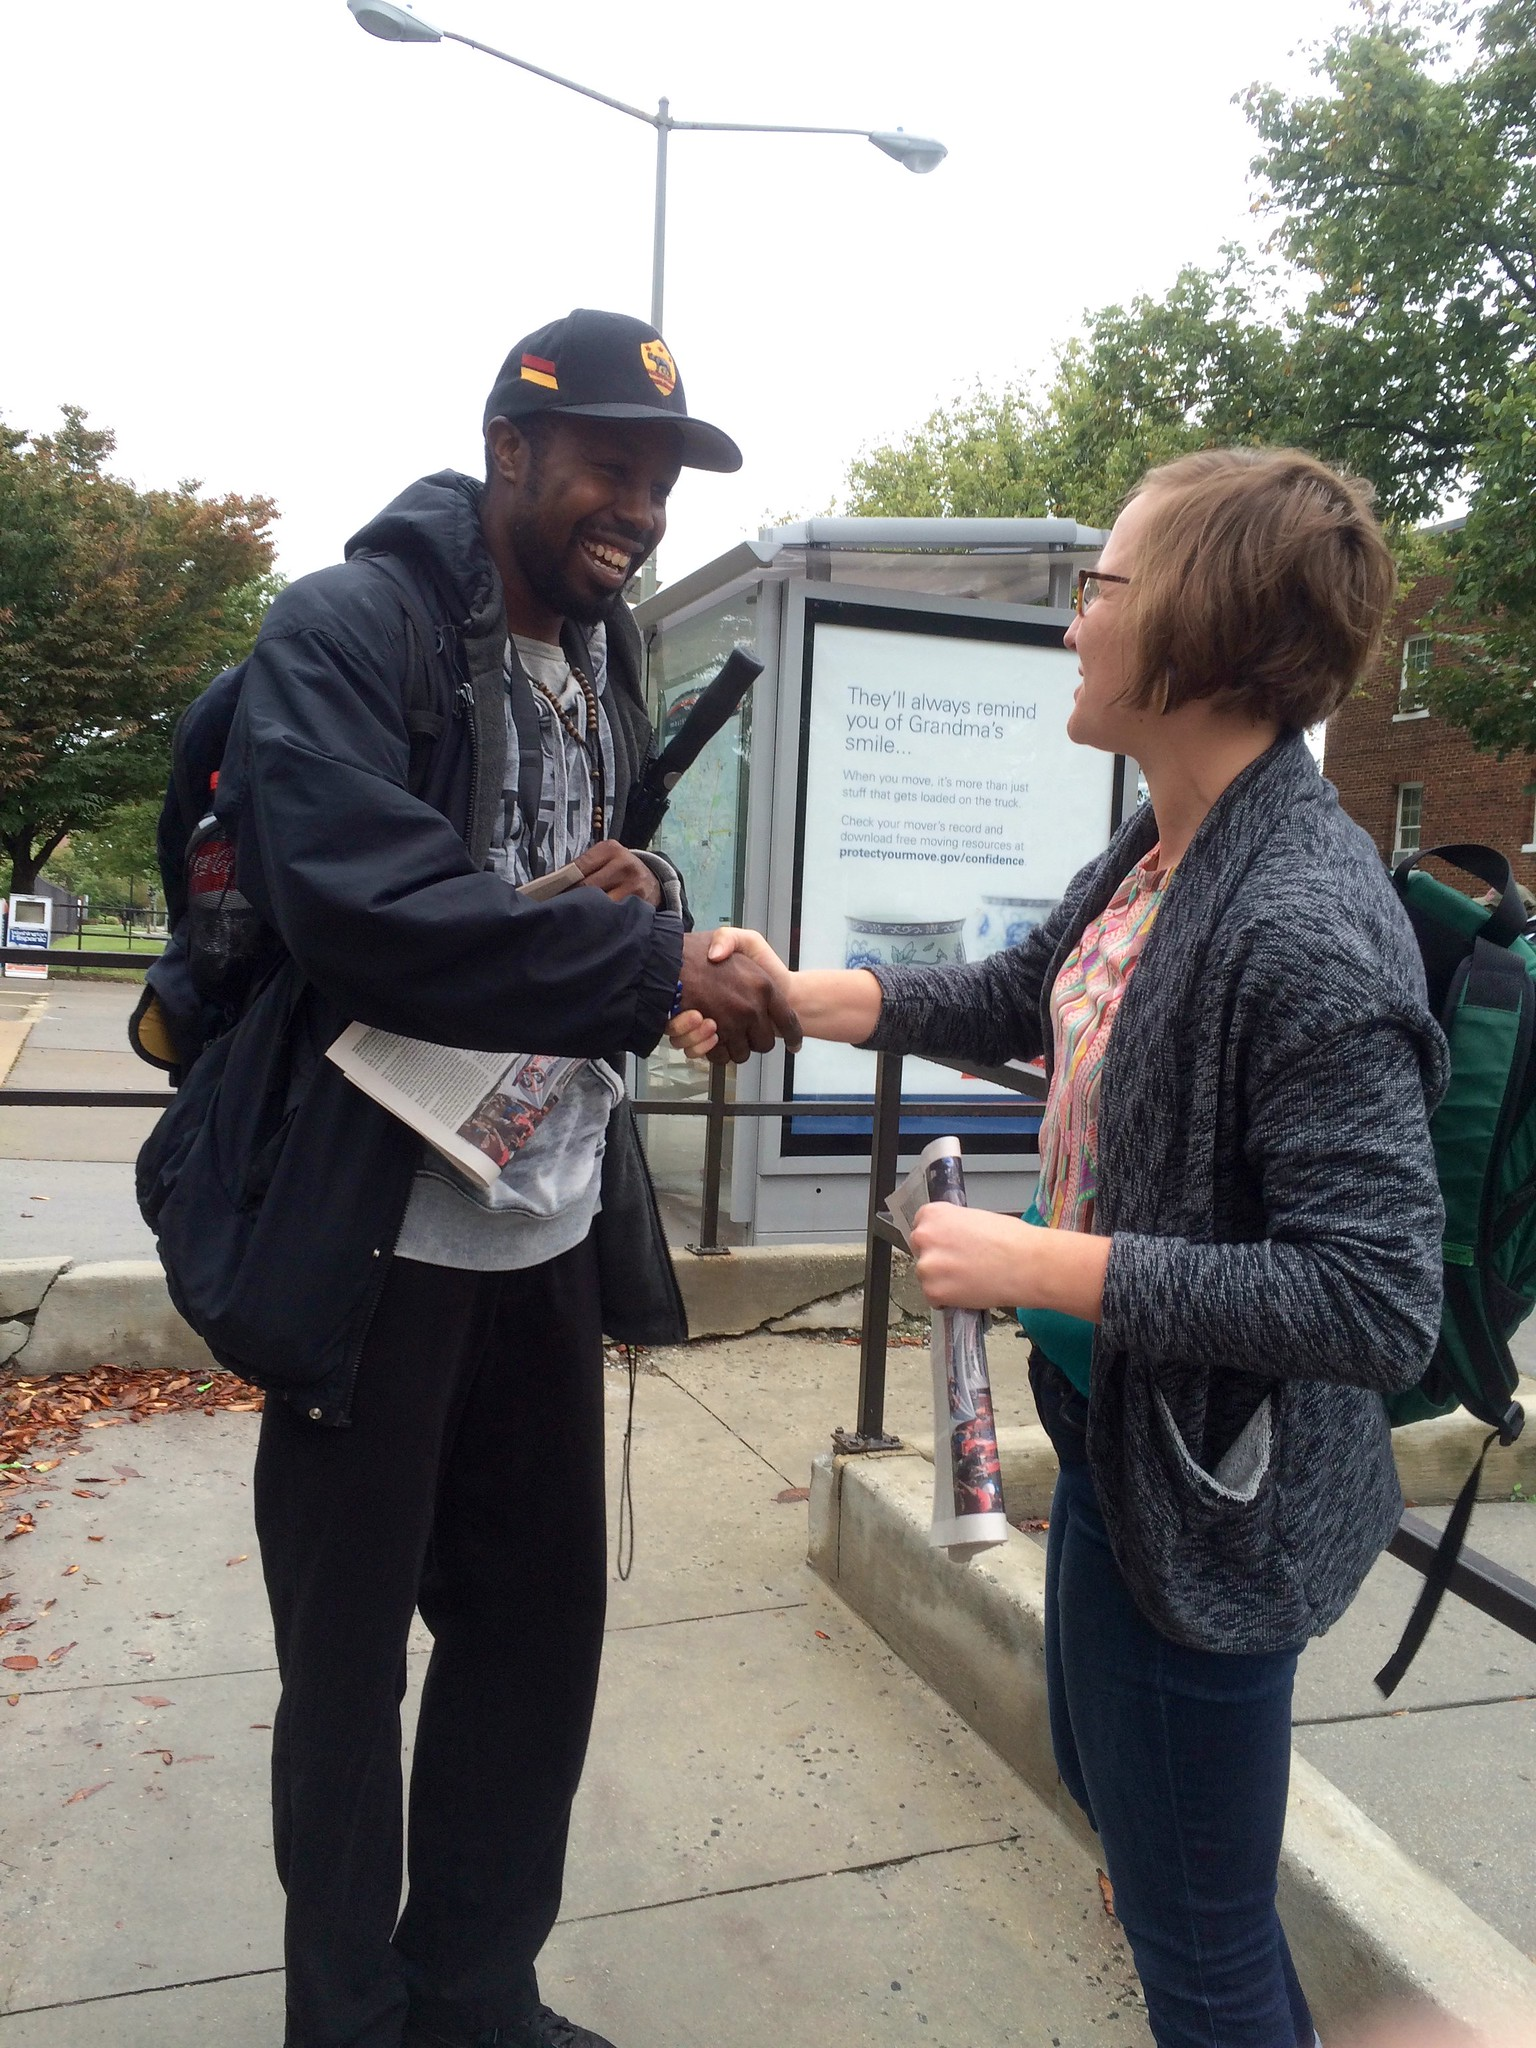 A man in a blue coat and baseball cap shakes hands with a woman, who we only see in profile. They are standing on an urban sidewalk in front of a bus shelter.